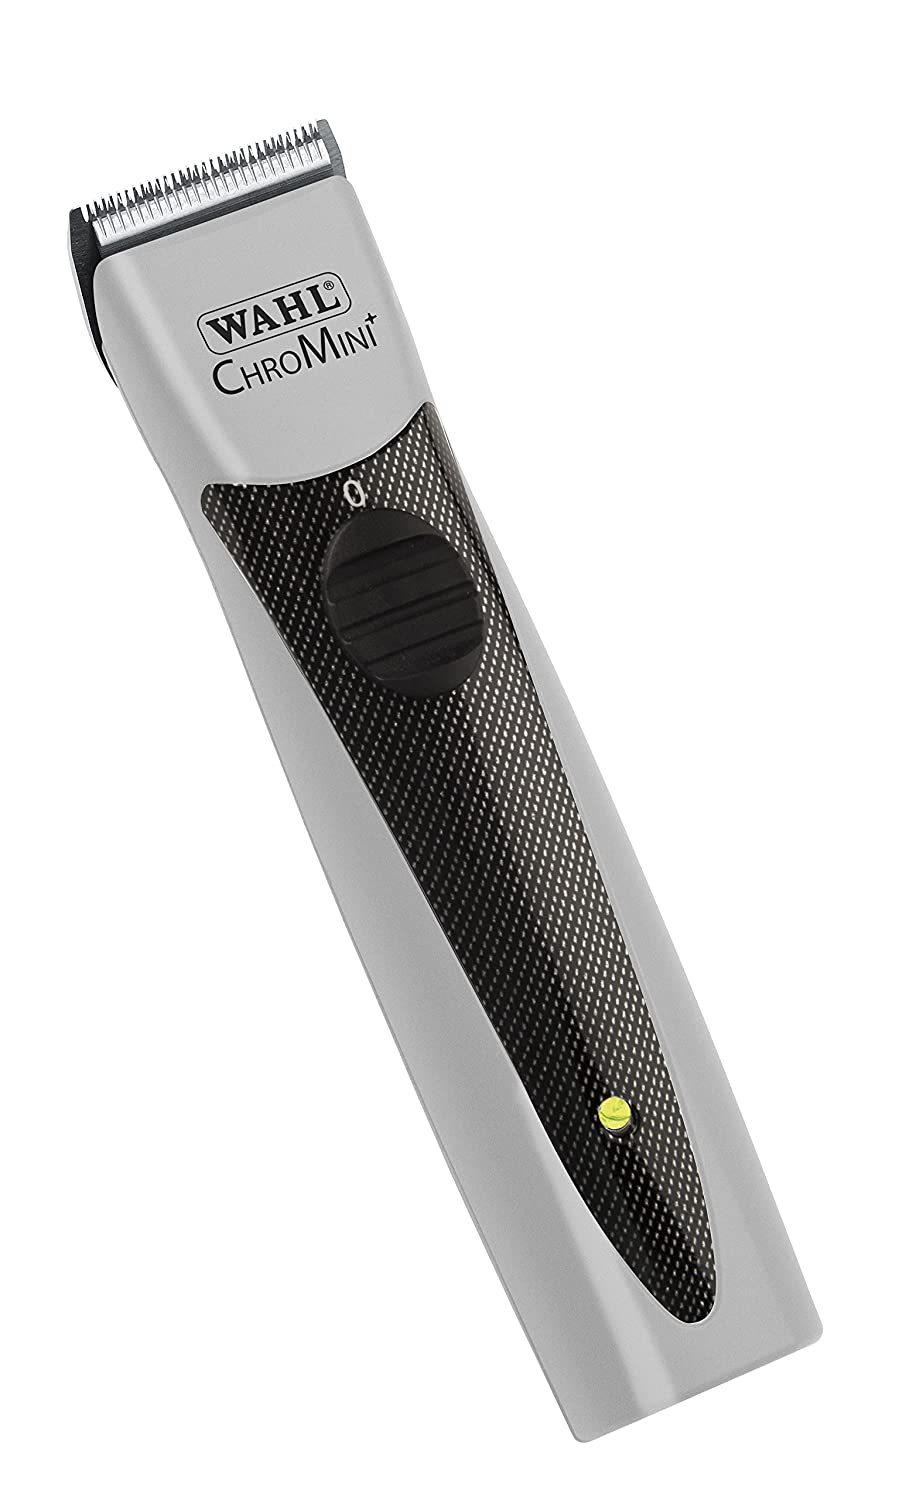 Wahl Professional Silver Chro Mini Plus Trimmer #56397, 705g